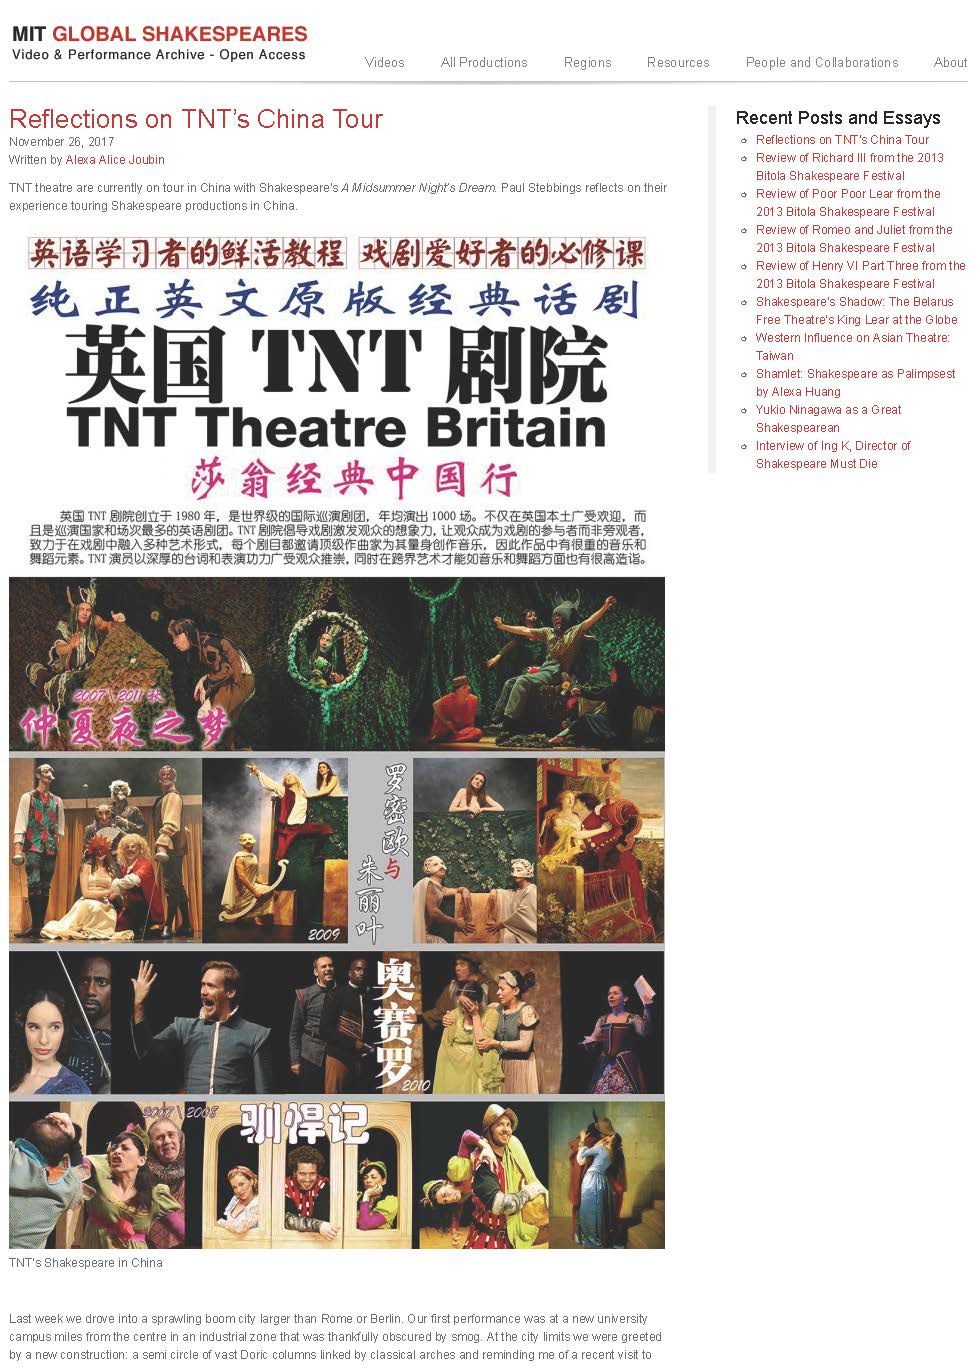 Reflections on TNT's China Tour « MIT Global Shakespeares_Seite_1